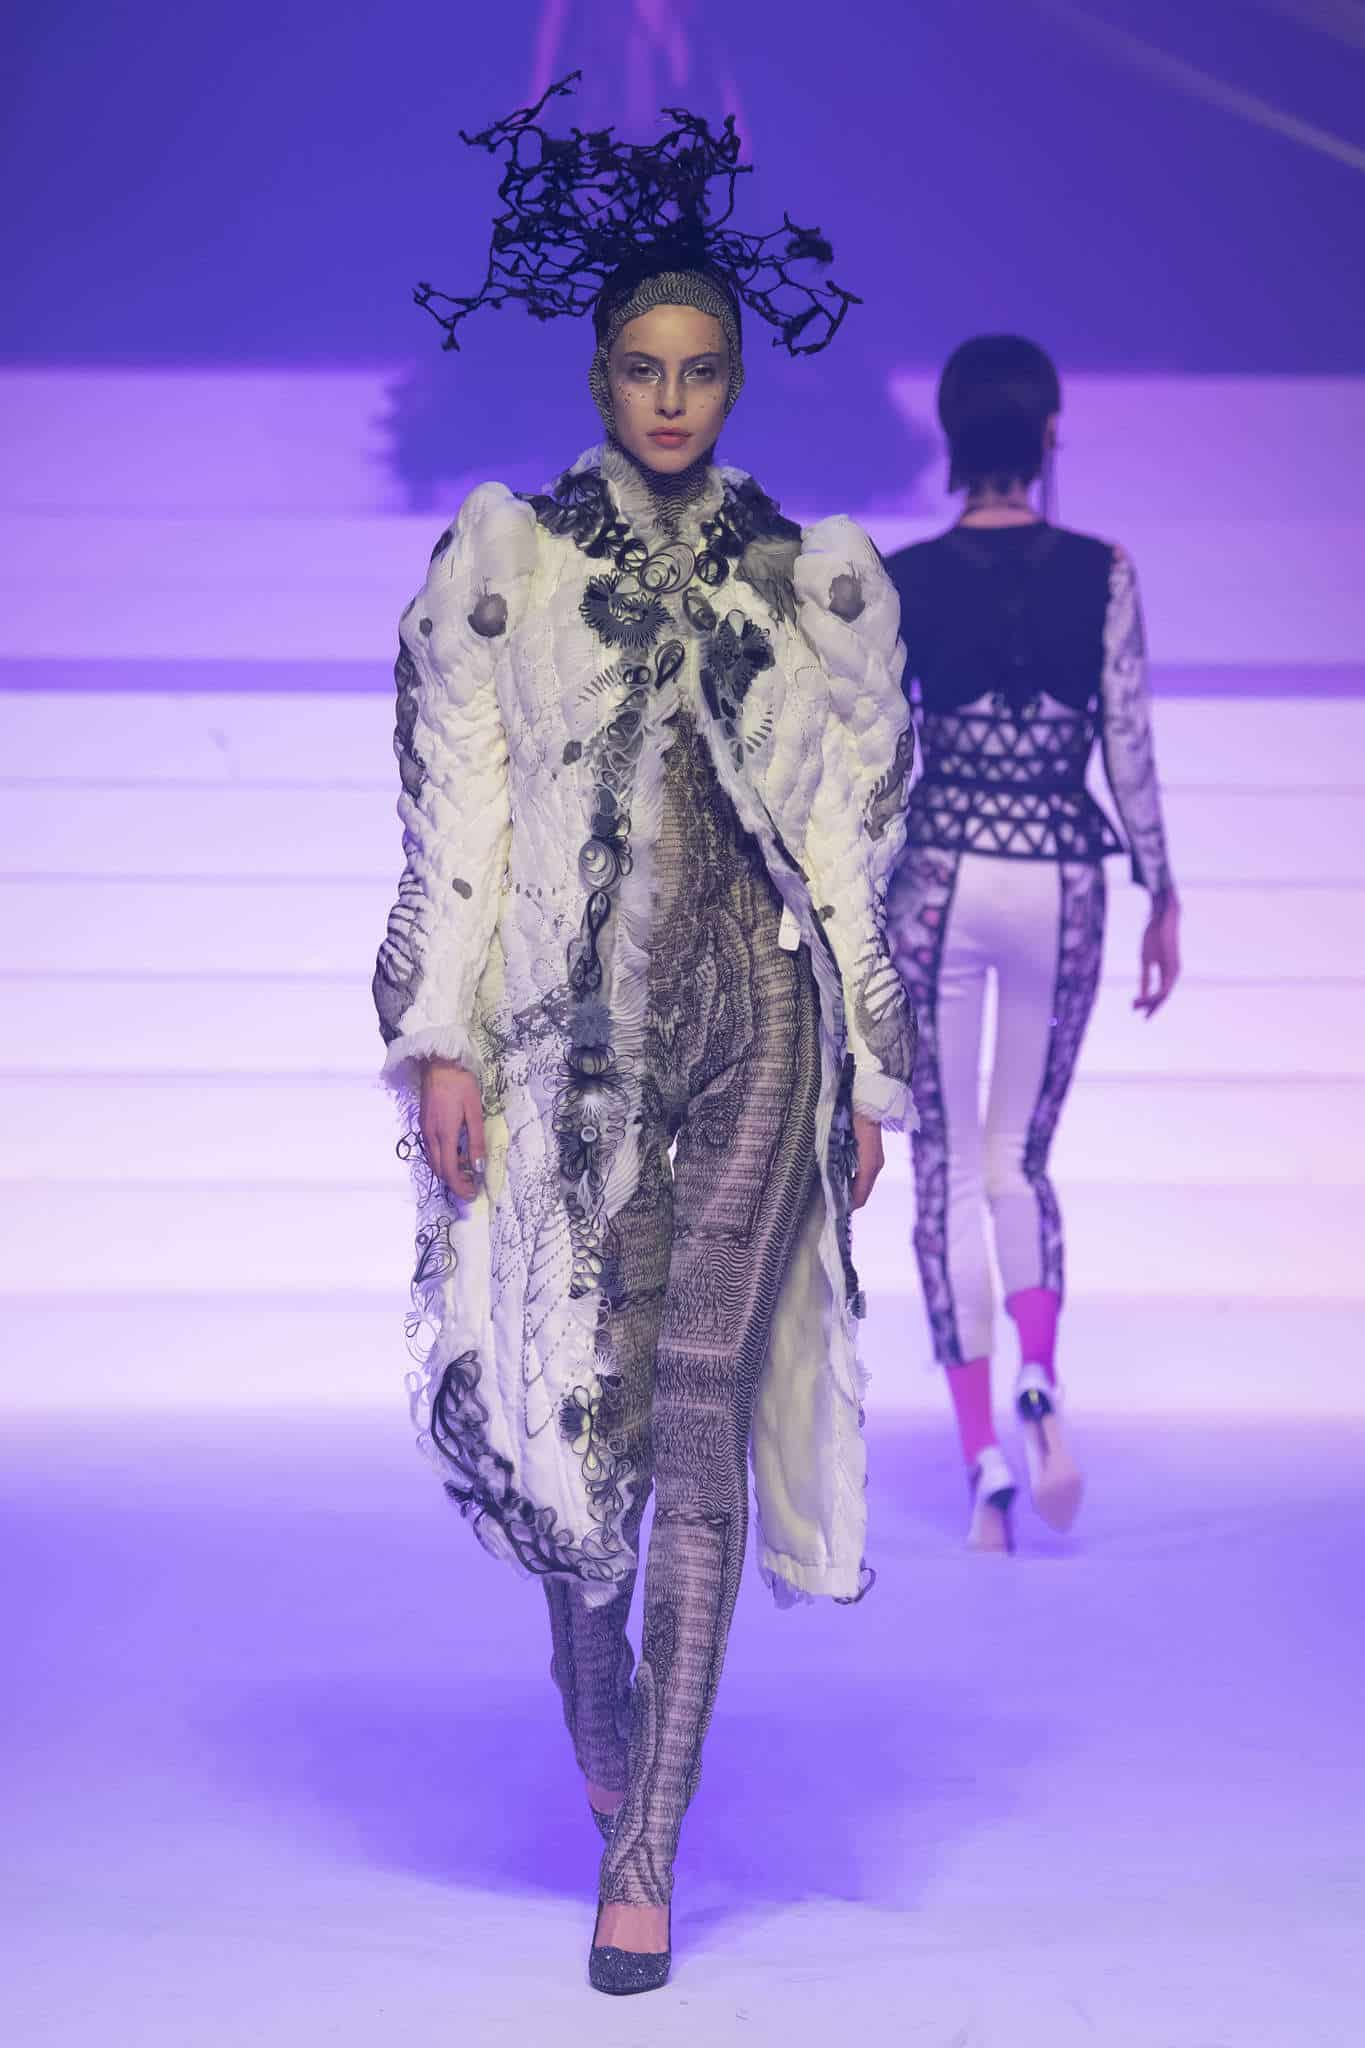 Jean Paul Gaultier's Upcycled Couture collection